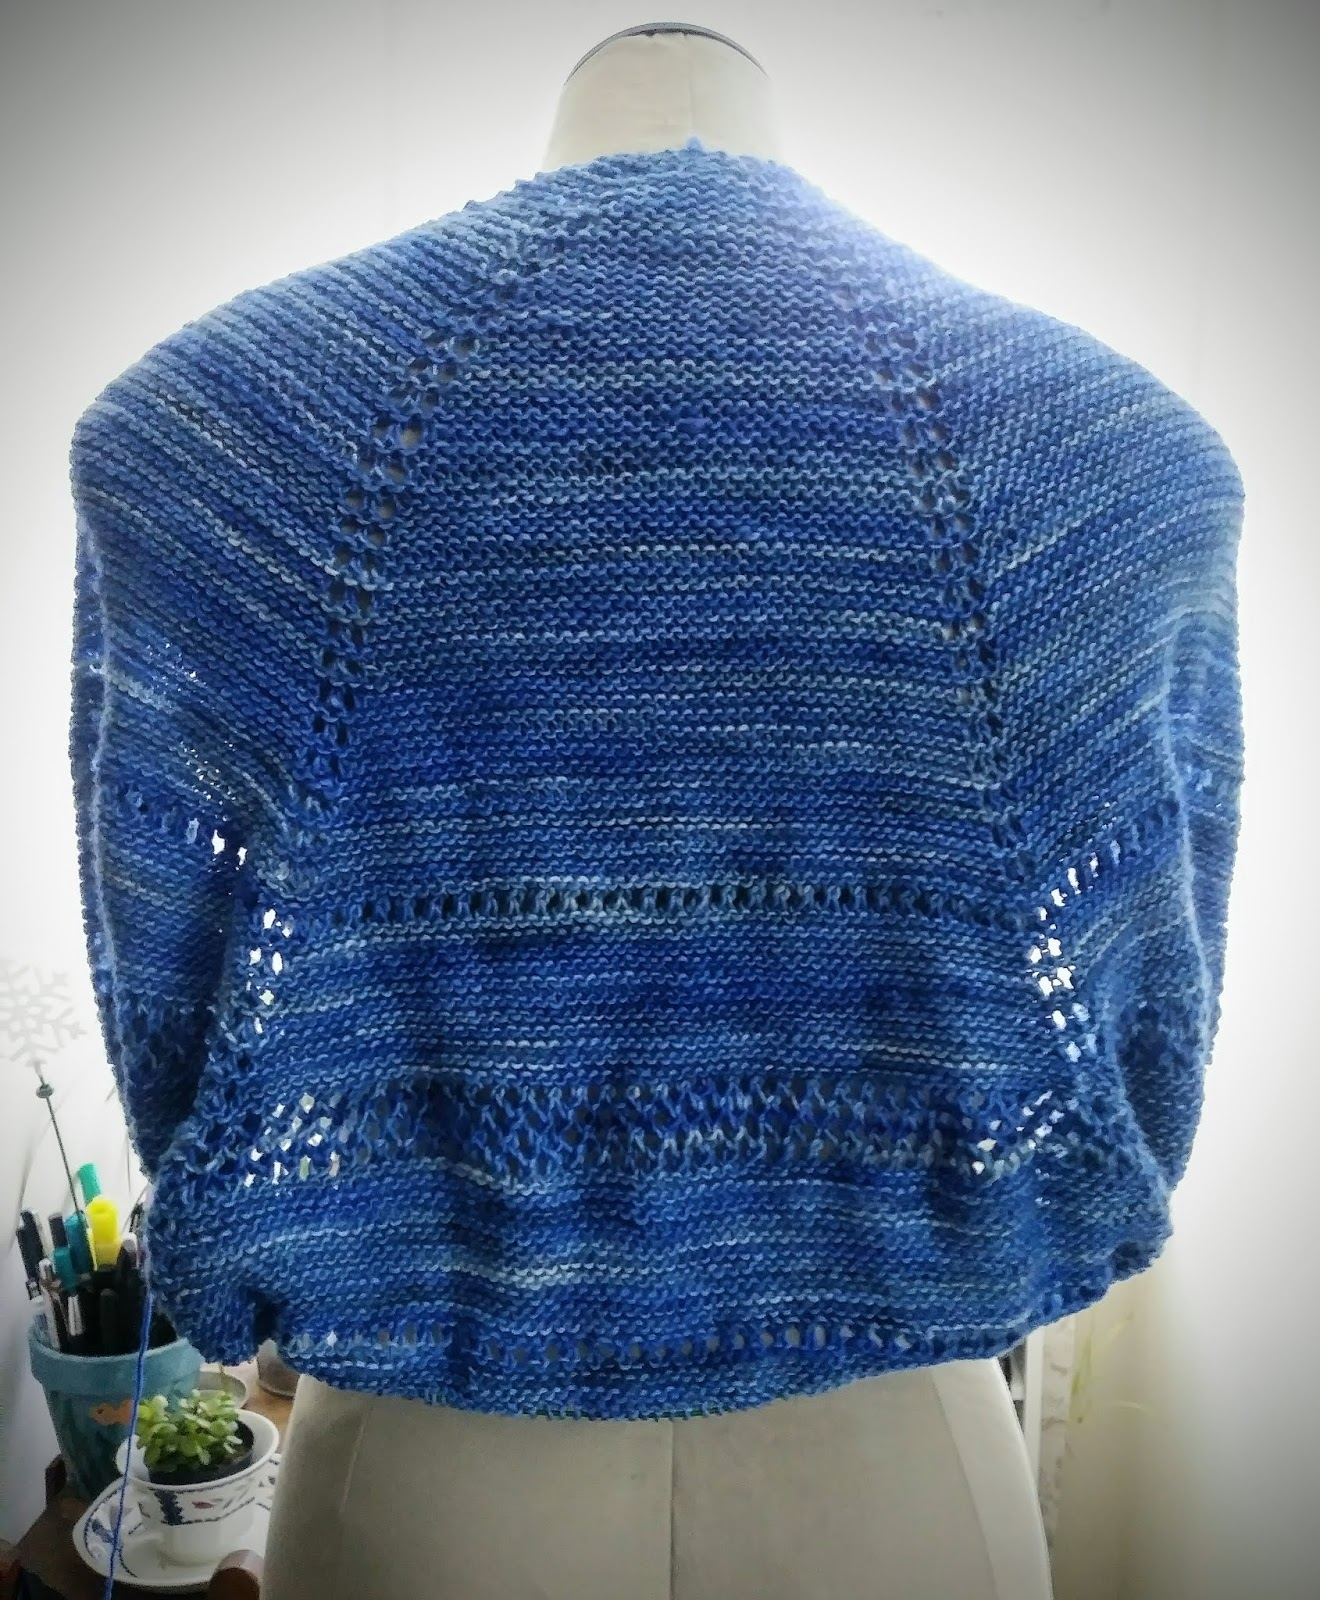 Jeannie Gray Knits: May 2019